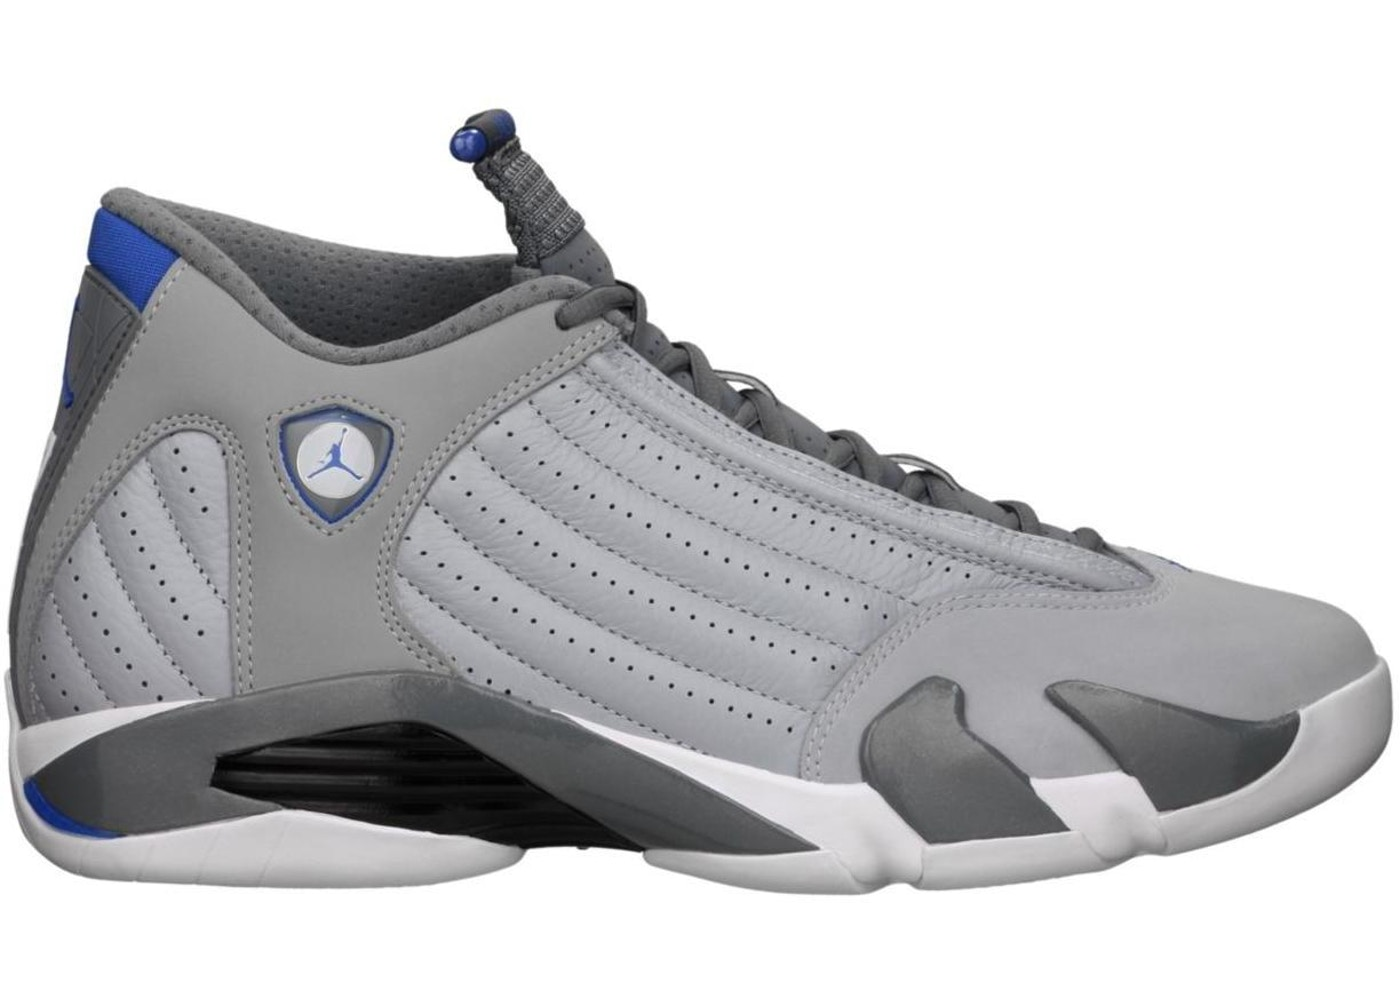 on sale 1b41c 192ee Jordan 14 Retro Wolf Grey